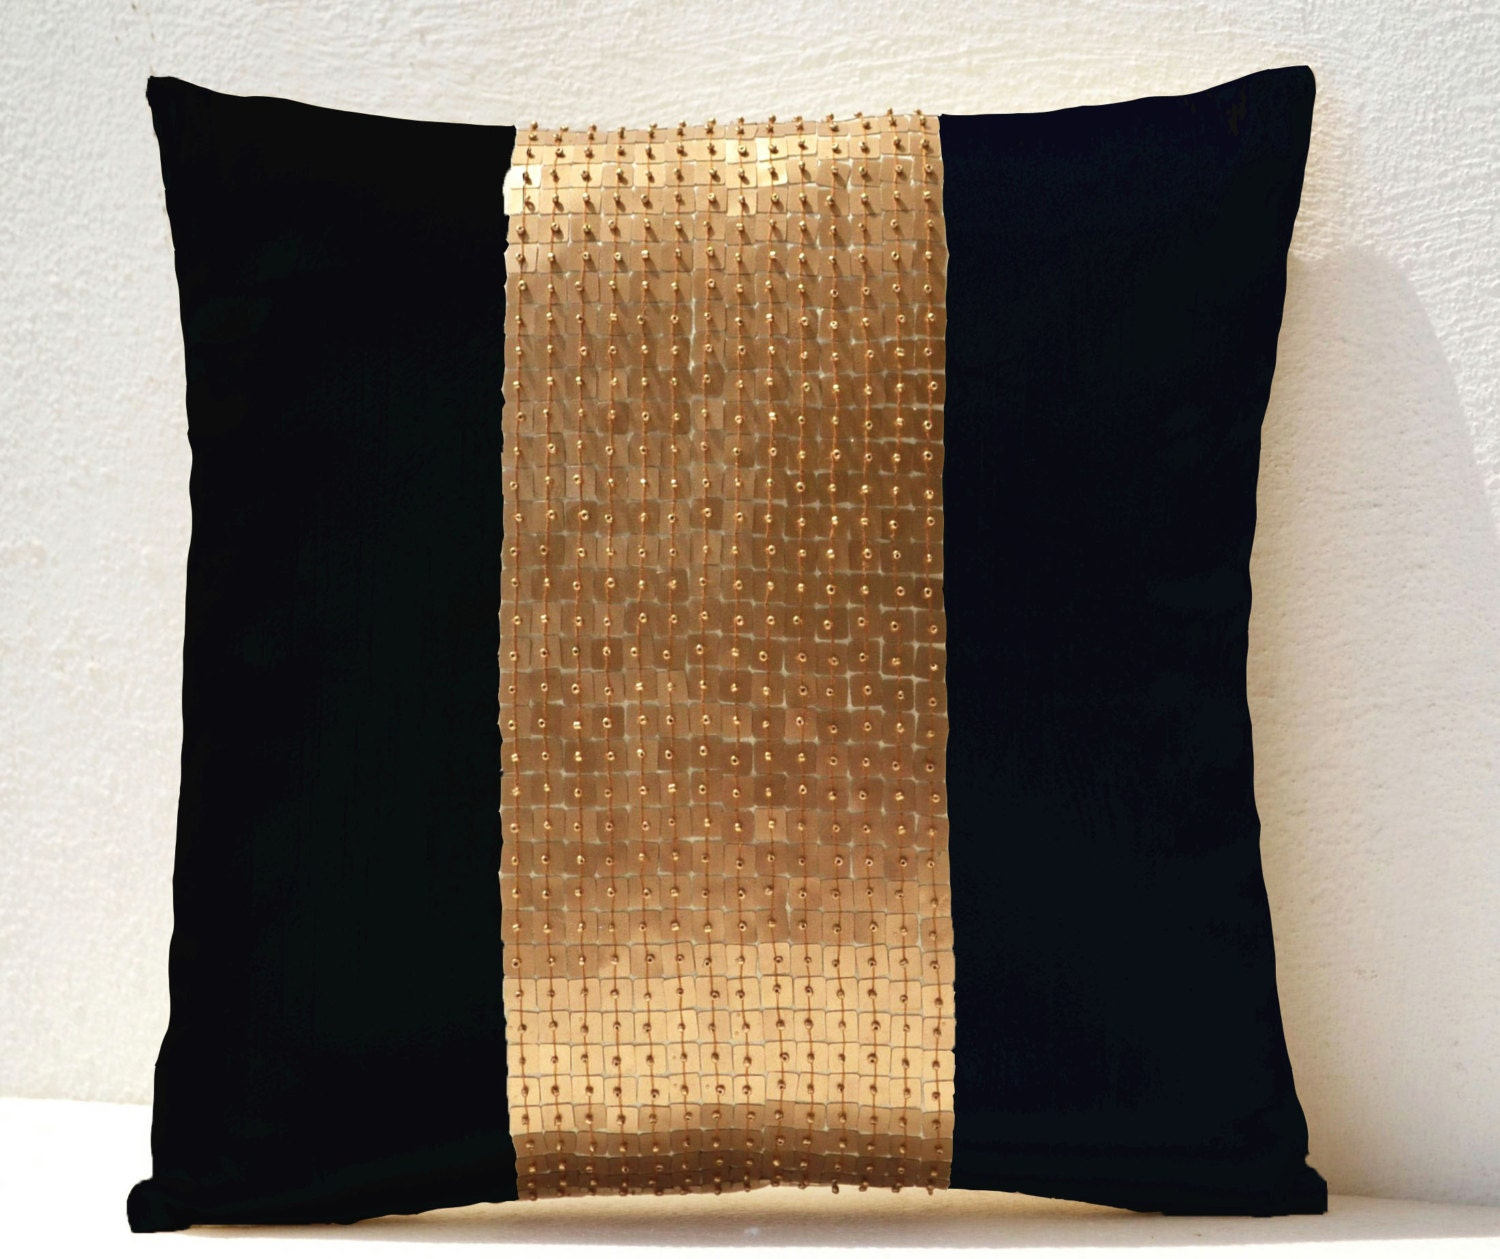 velvet piping knife closure decorative fullxfull or cover pillows accent couch to cotton pillow olive green for invisible zipper edge listing mlfq throw il